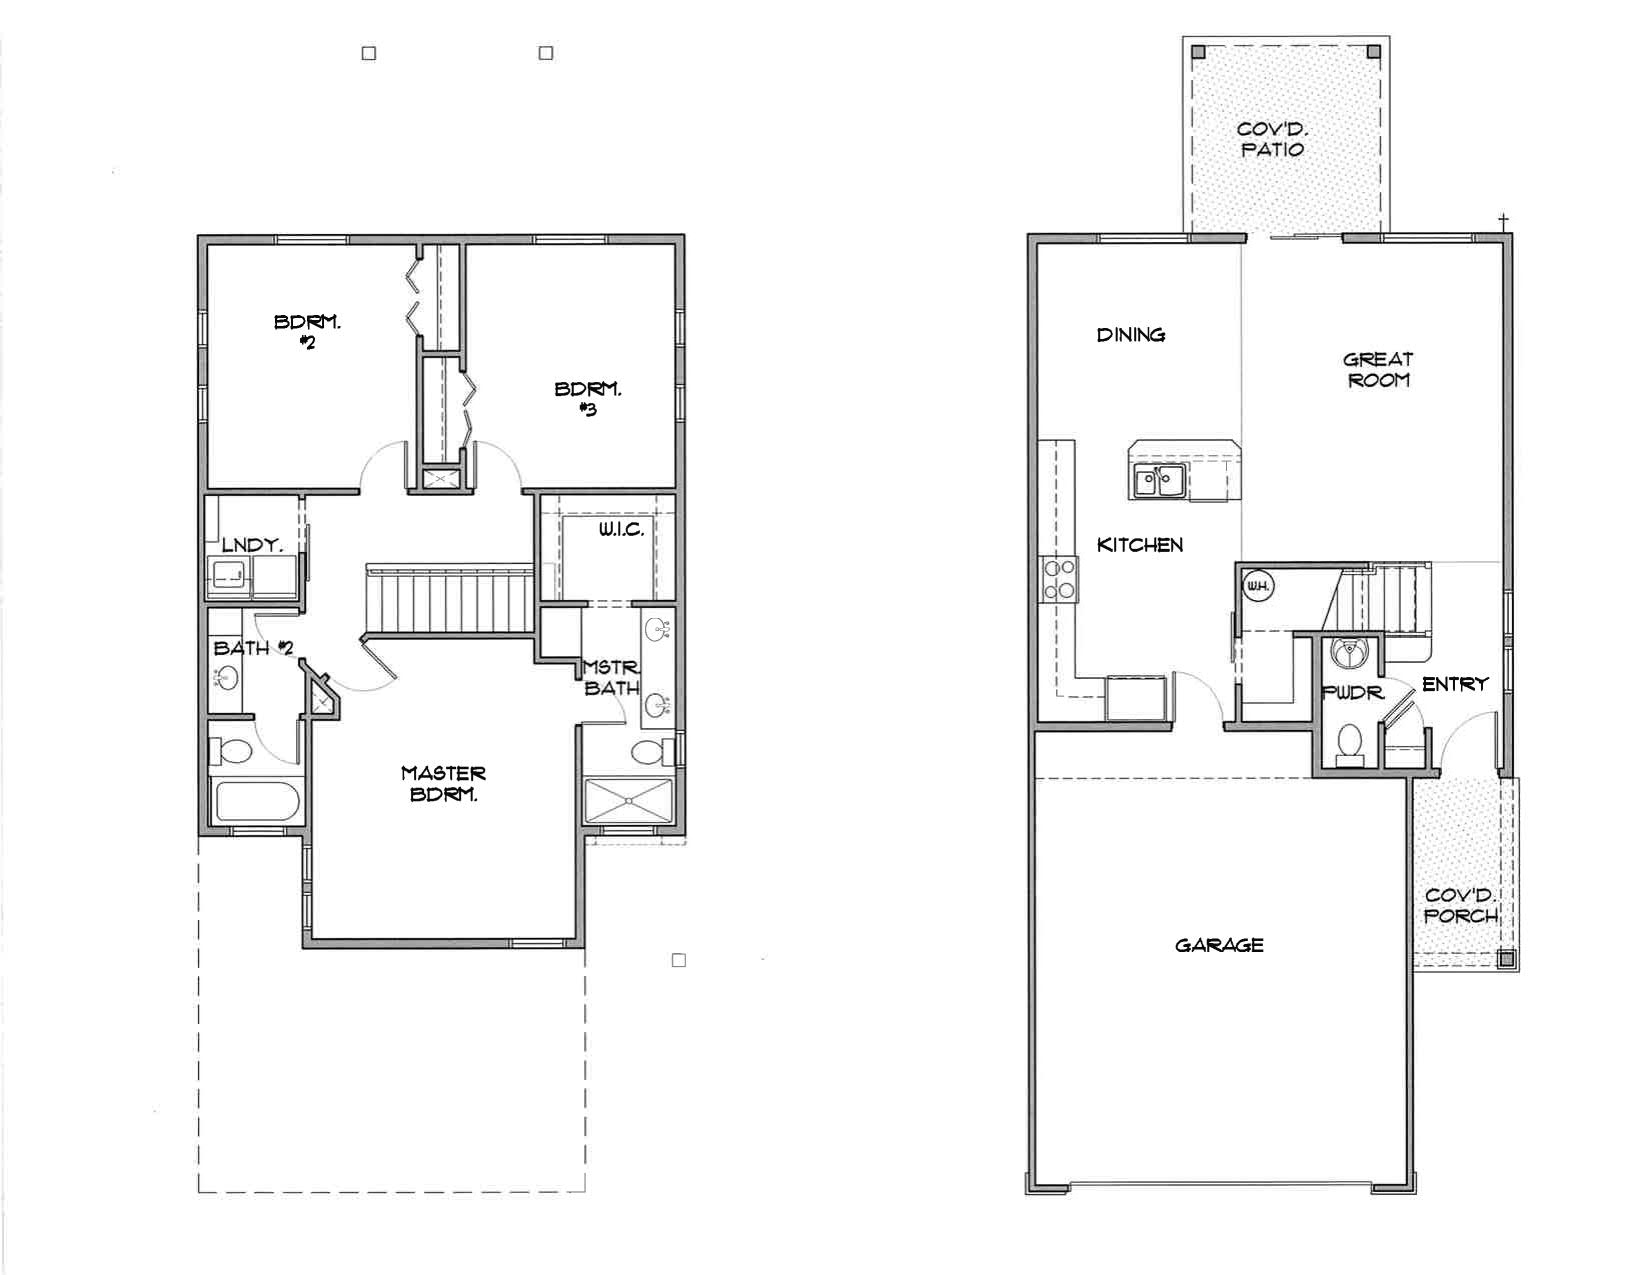 Floorplan elevations southcreek patio homes for Floorplan com